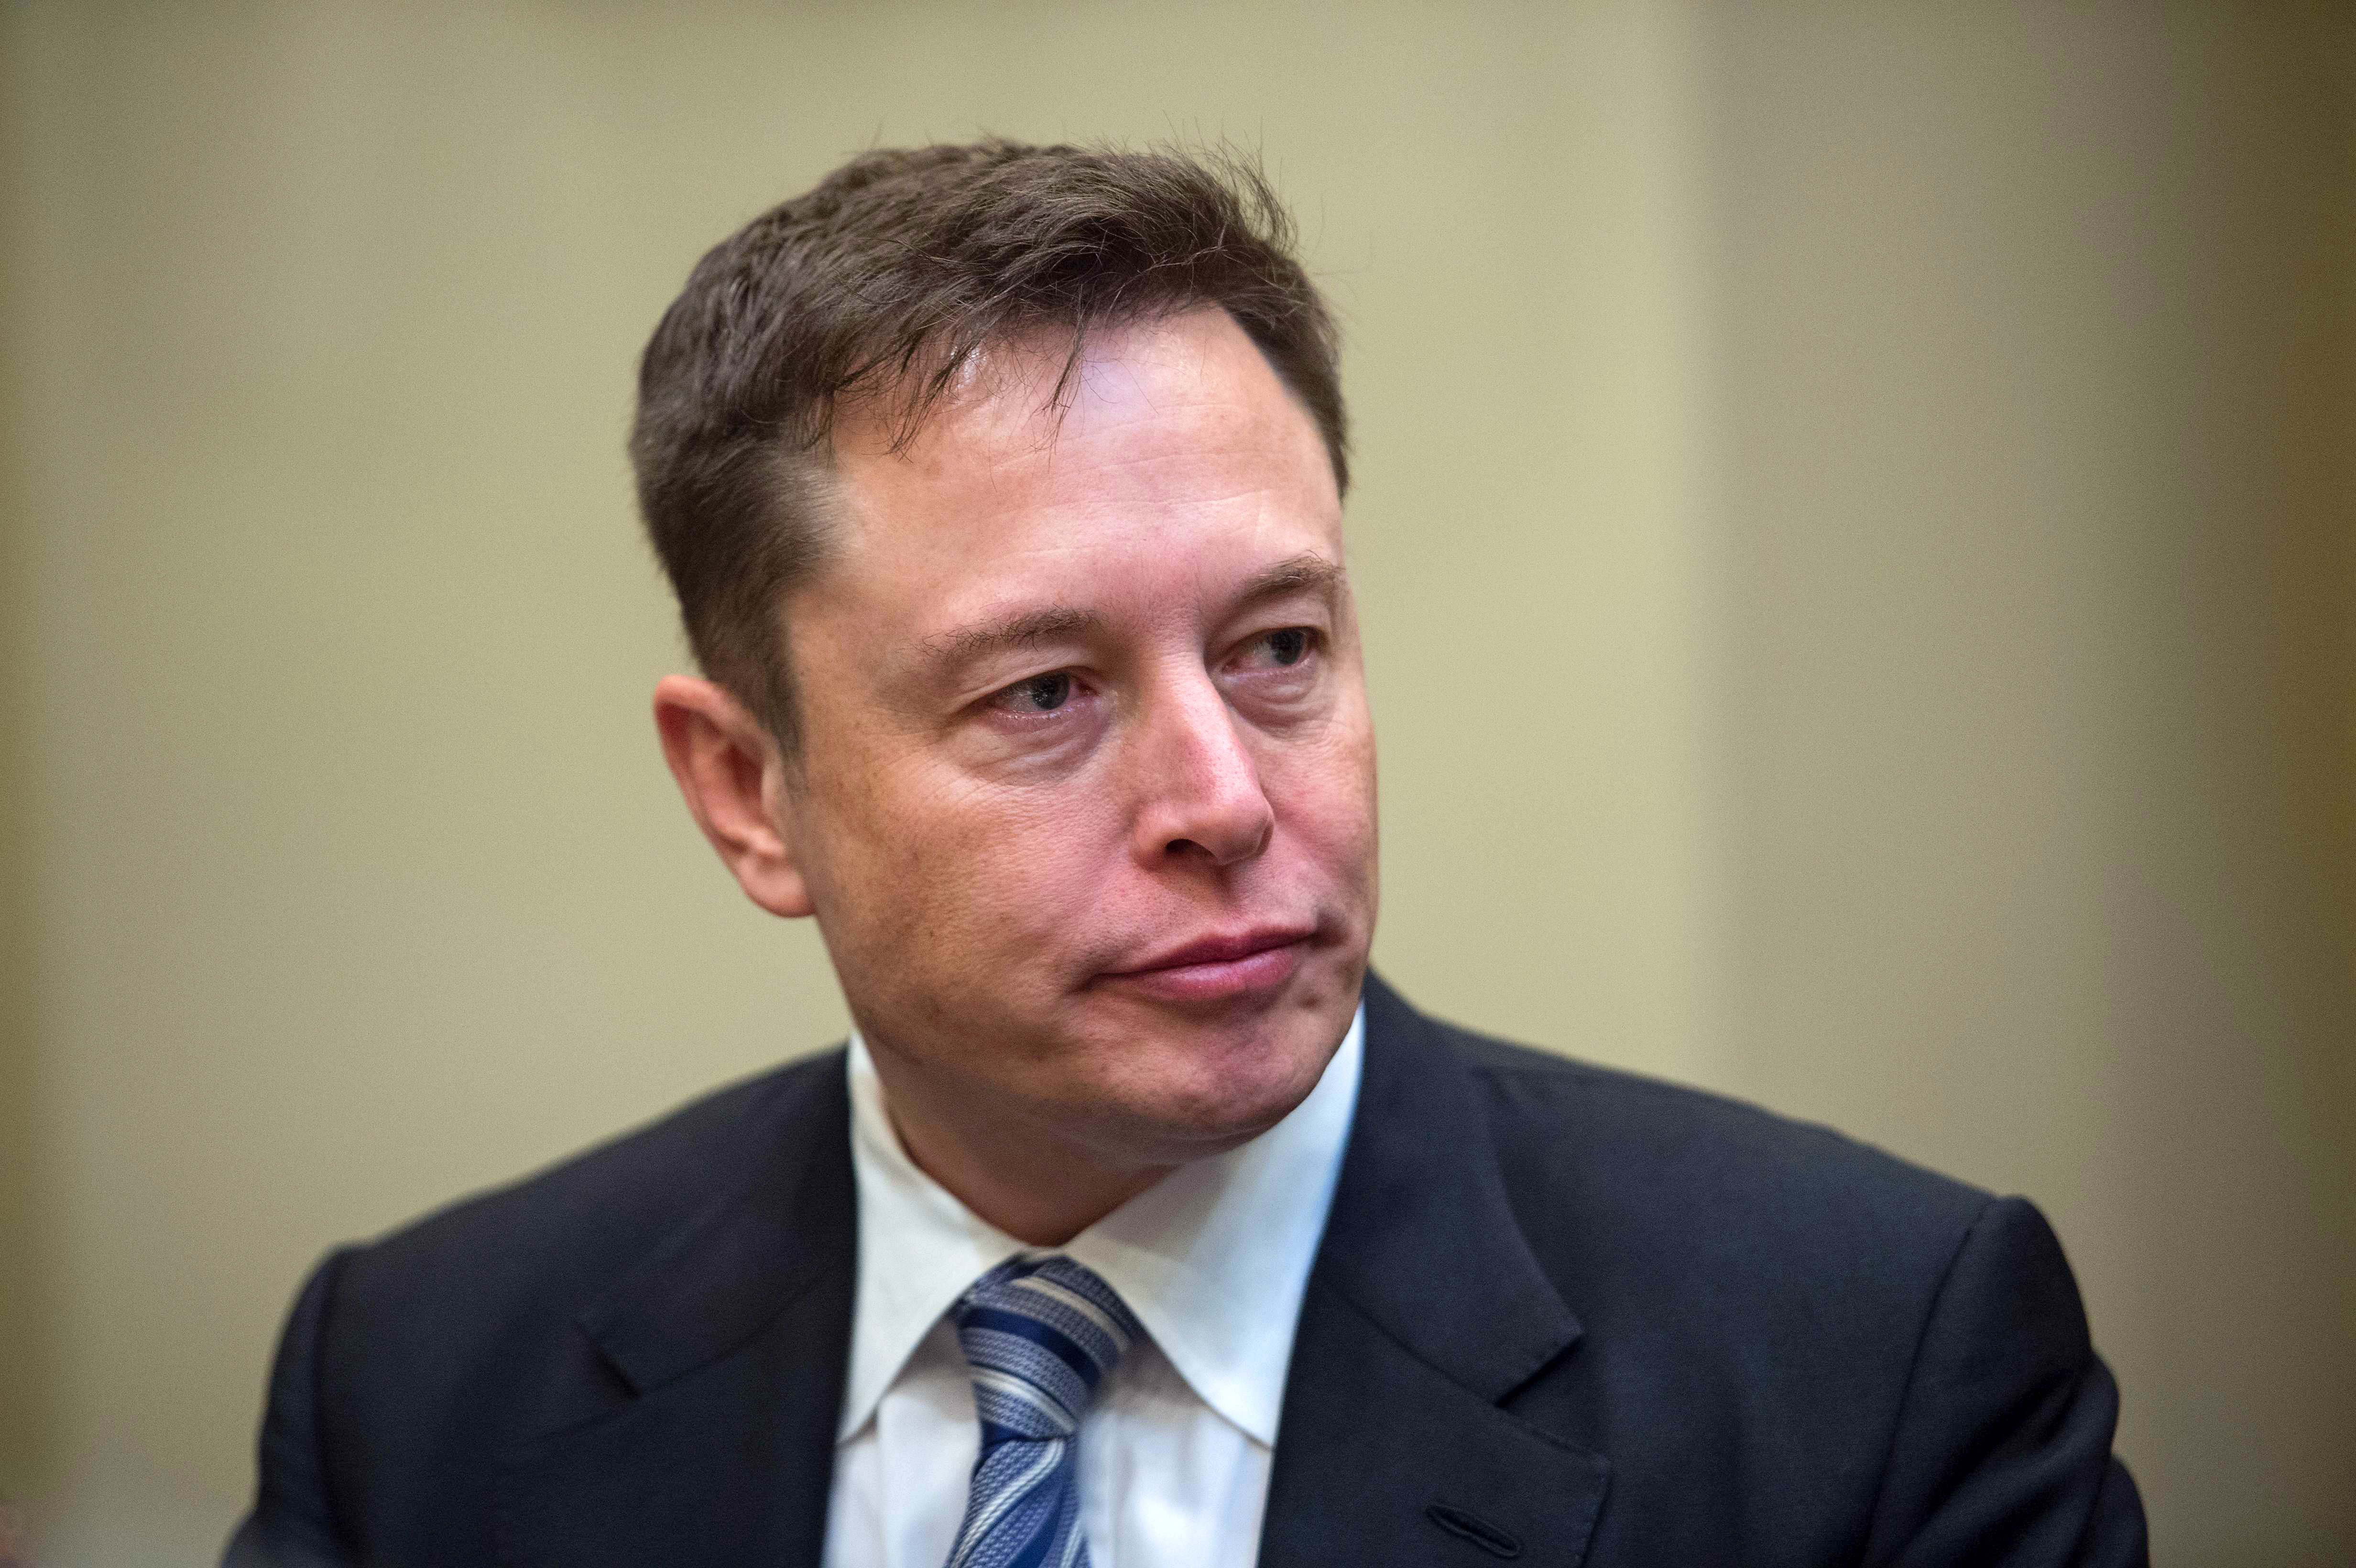 Elon Musk listens to President Donald Trump speak during a meeting with business leaders in the Roosevelt Room at the White House in Washington, DC, on January 23, 2017.